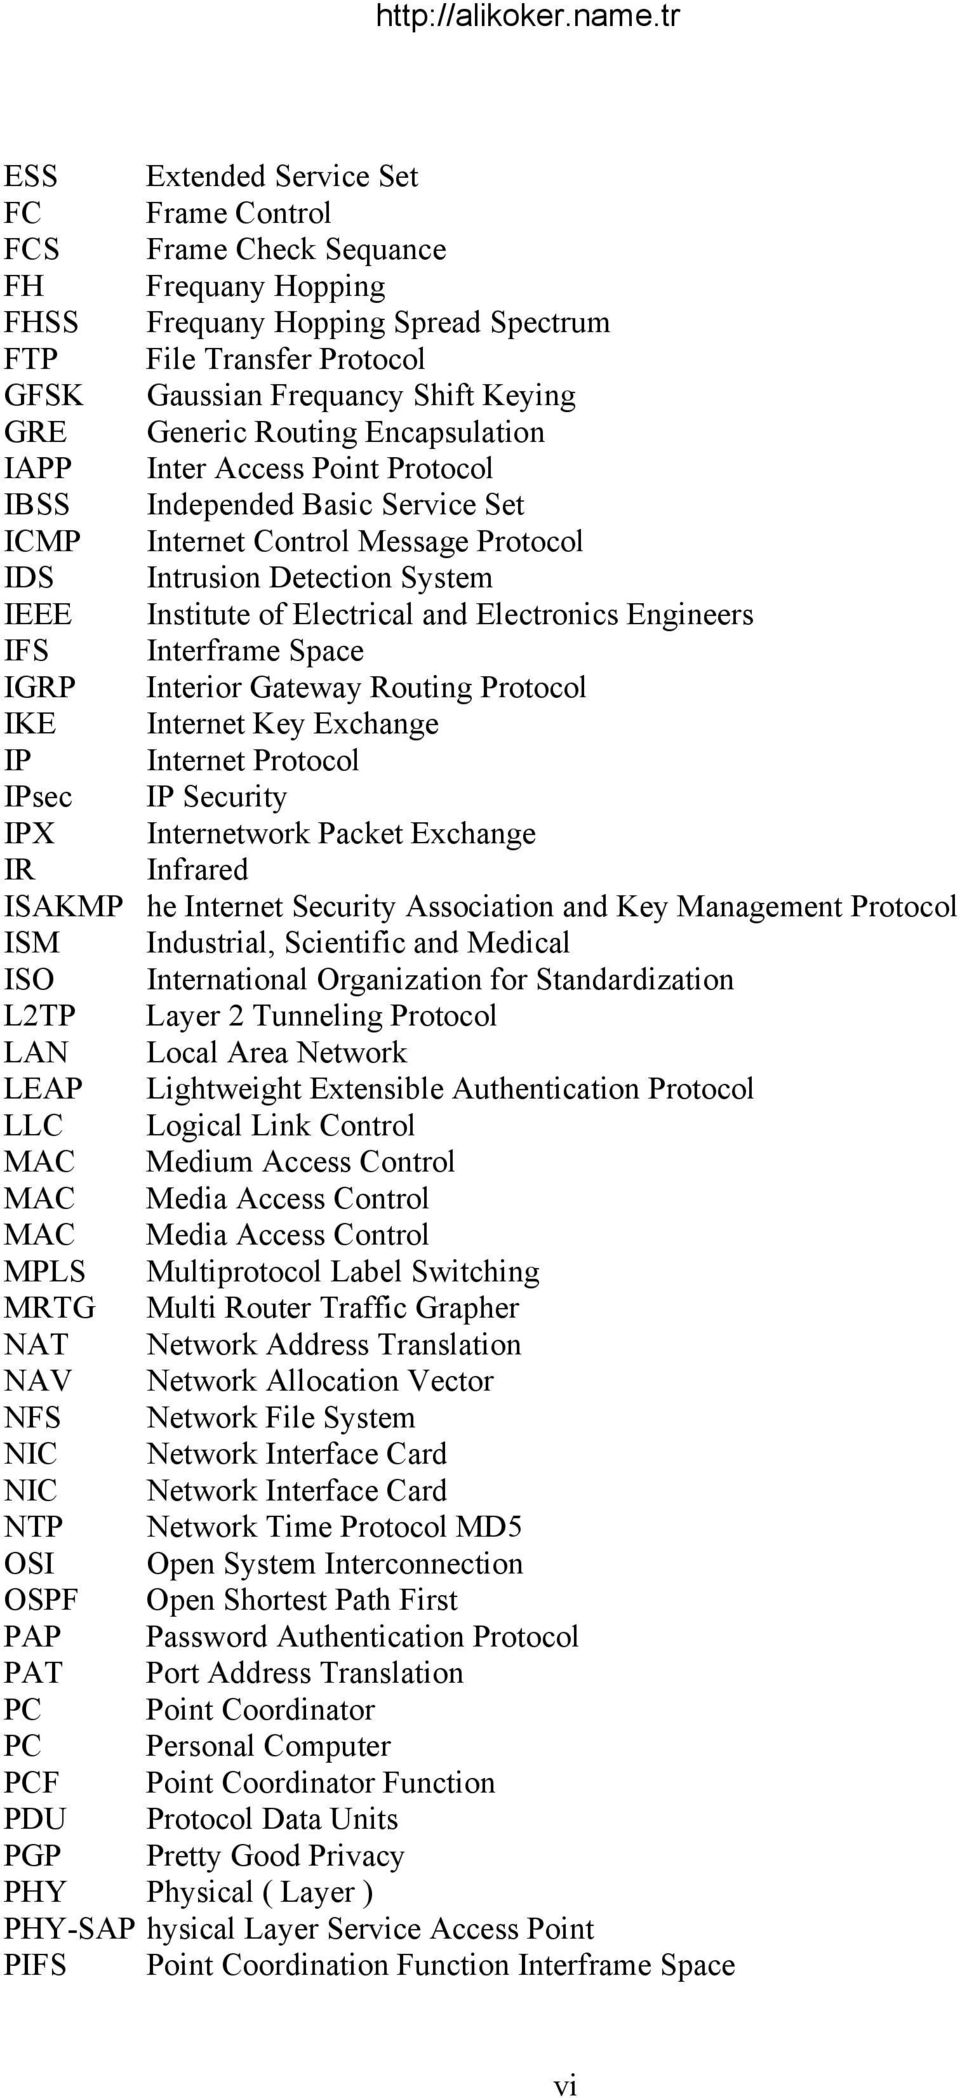 Electronics Engineers IFS Interframe Space IGRP Interior Gateway Routing Protocol IKE Internet Key Exchange IP Internet Protocol IPsec IP Security IPX Internetwork Packet Exchange IR Infrared ISAKMP